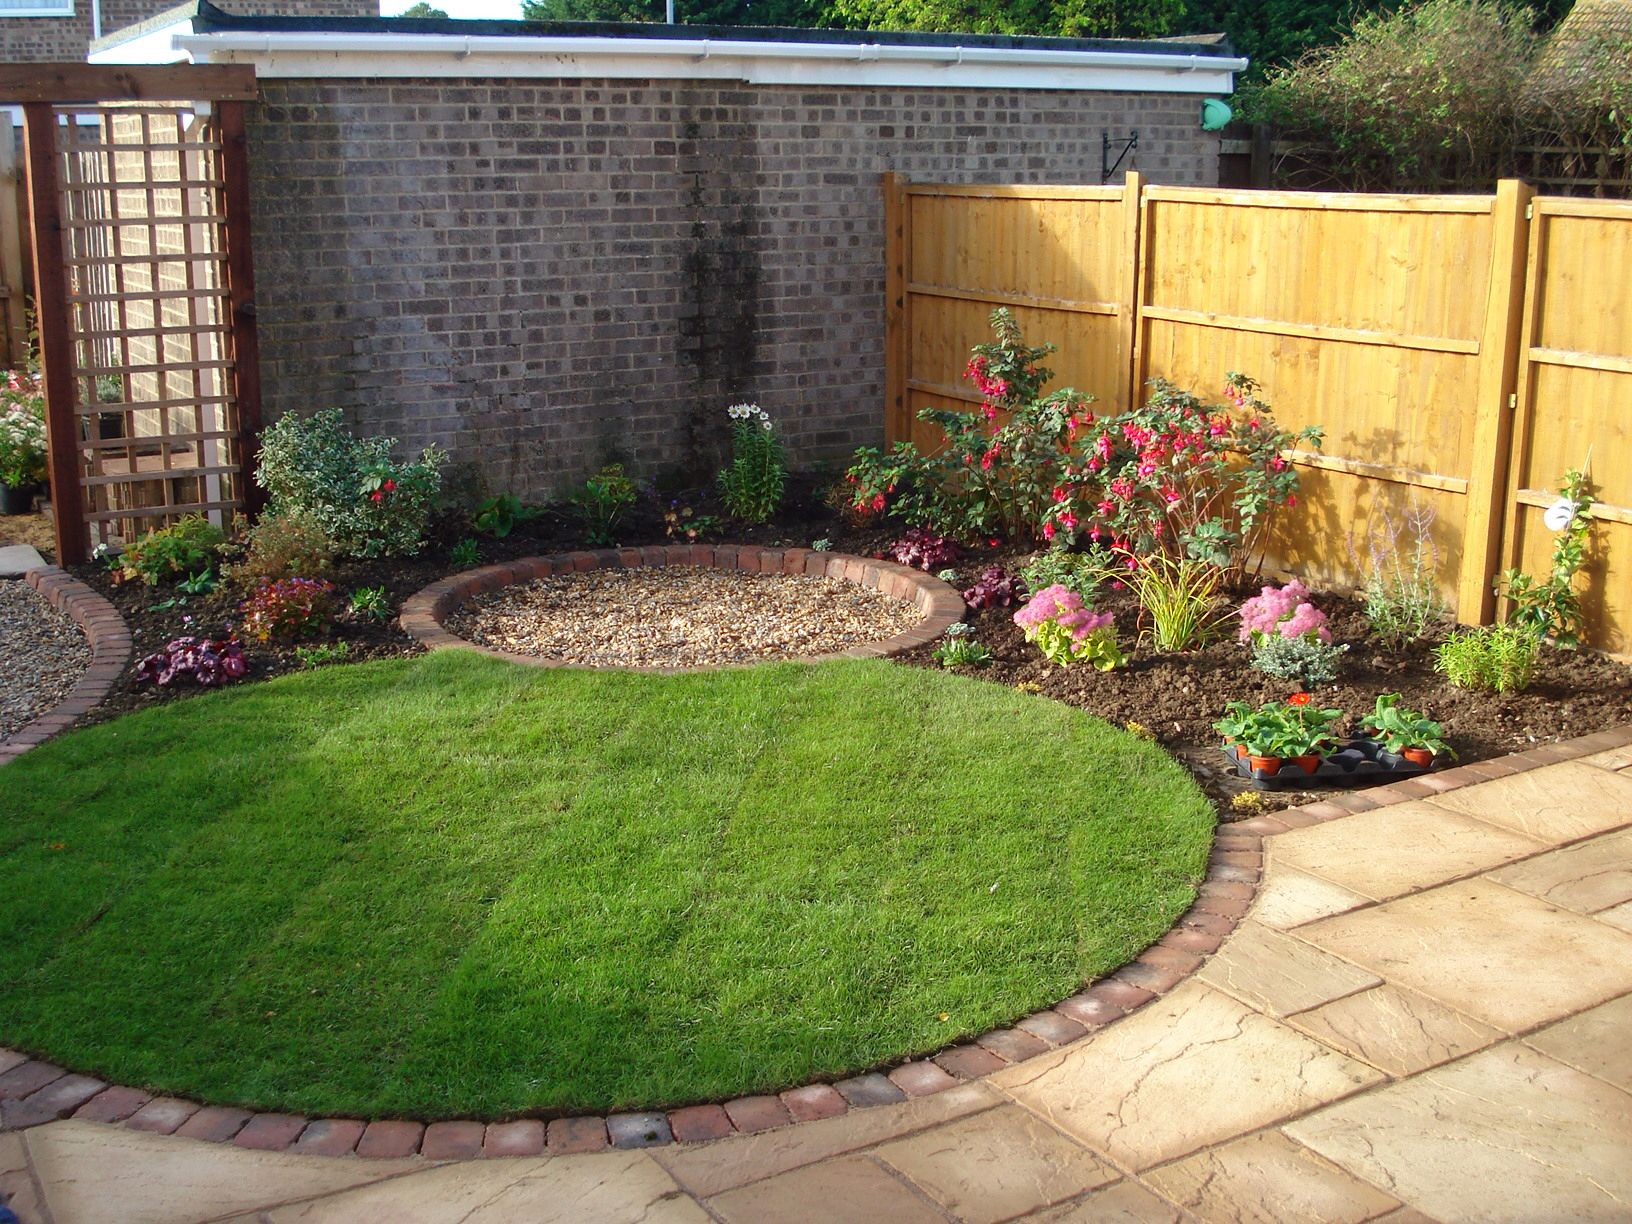 Small circular lawn with tiny round patio